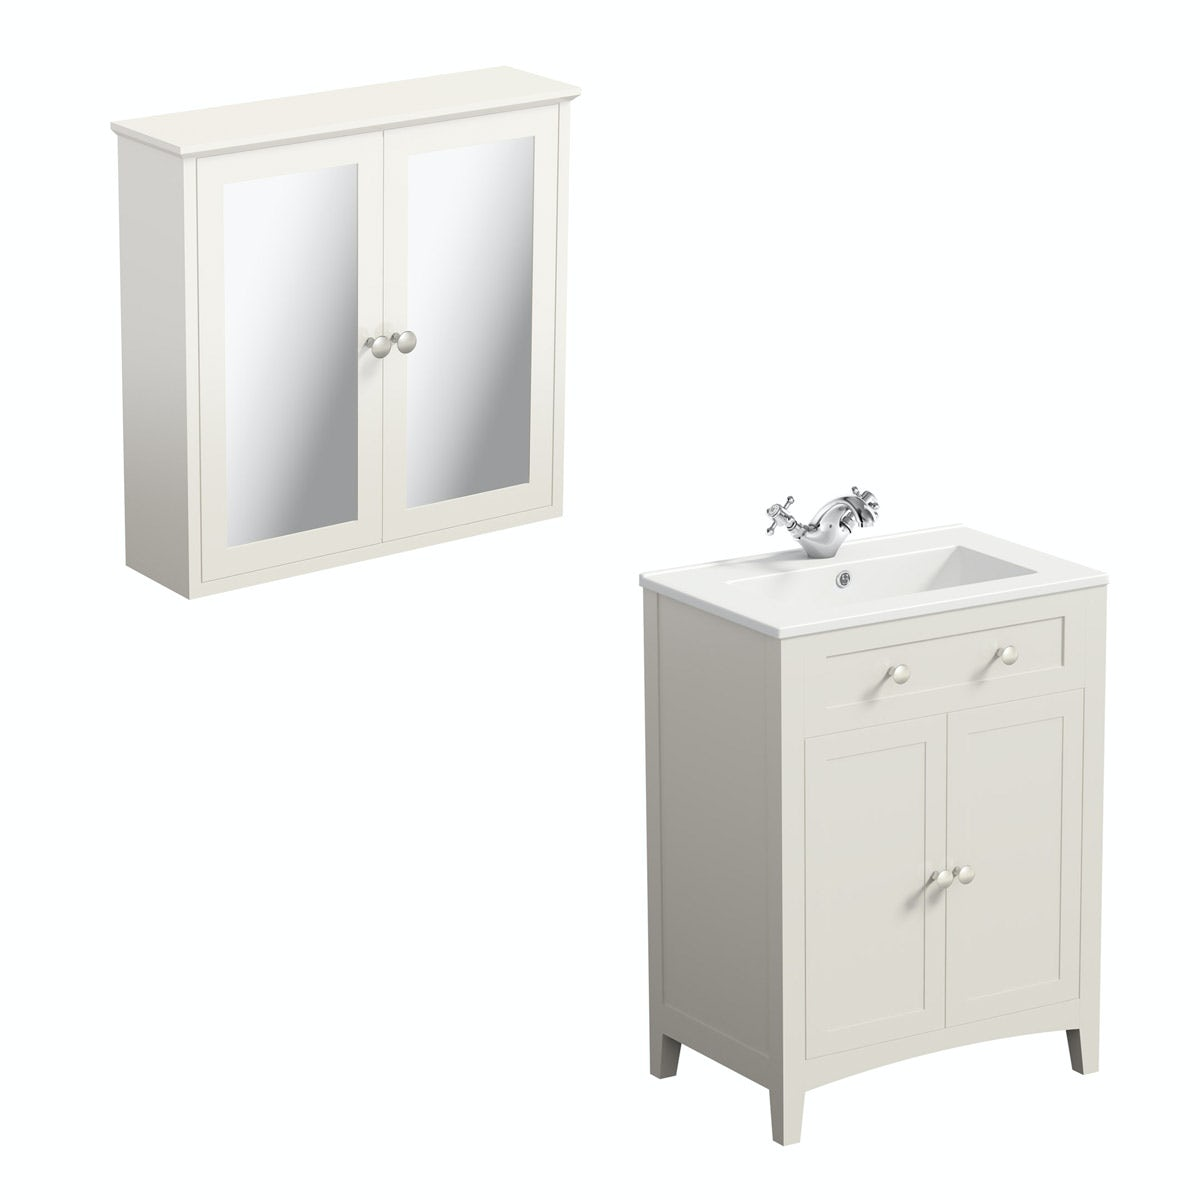 The Bath Co. Camberley ivory vanity unit with basin 600mm with mirror cabinet